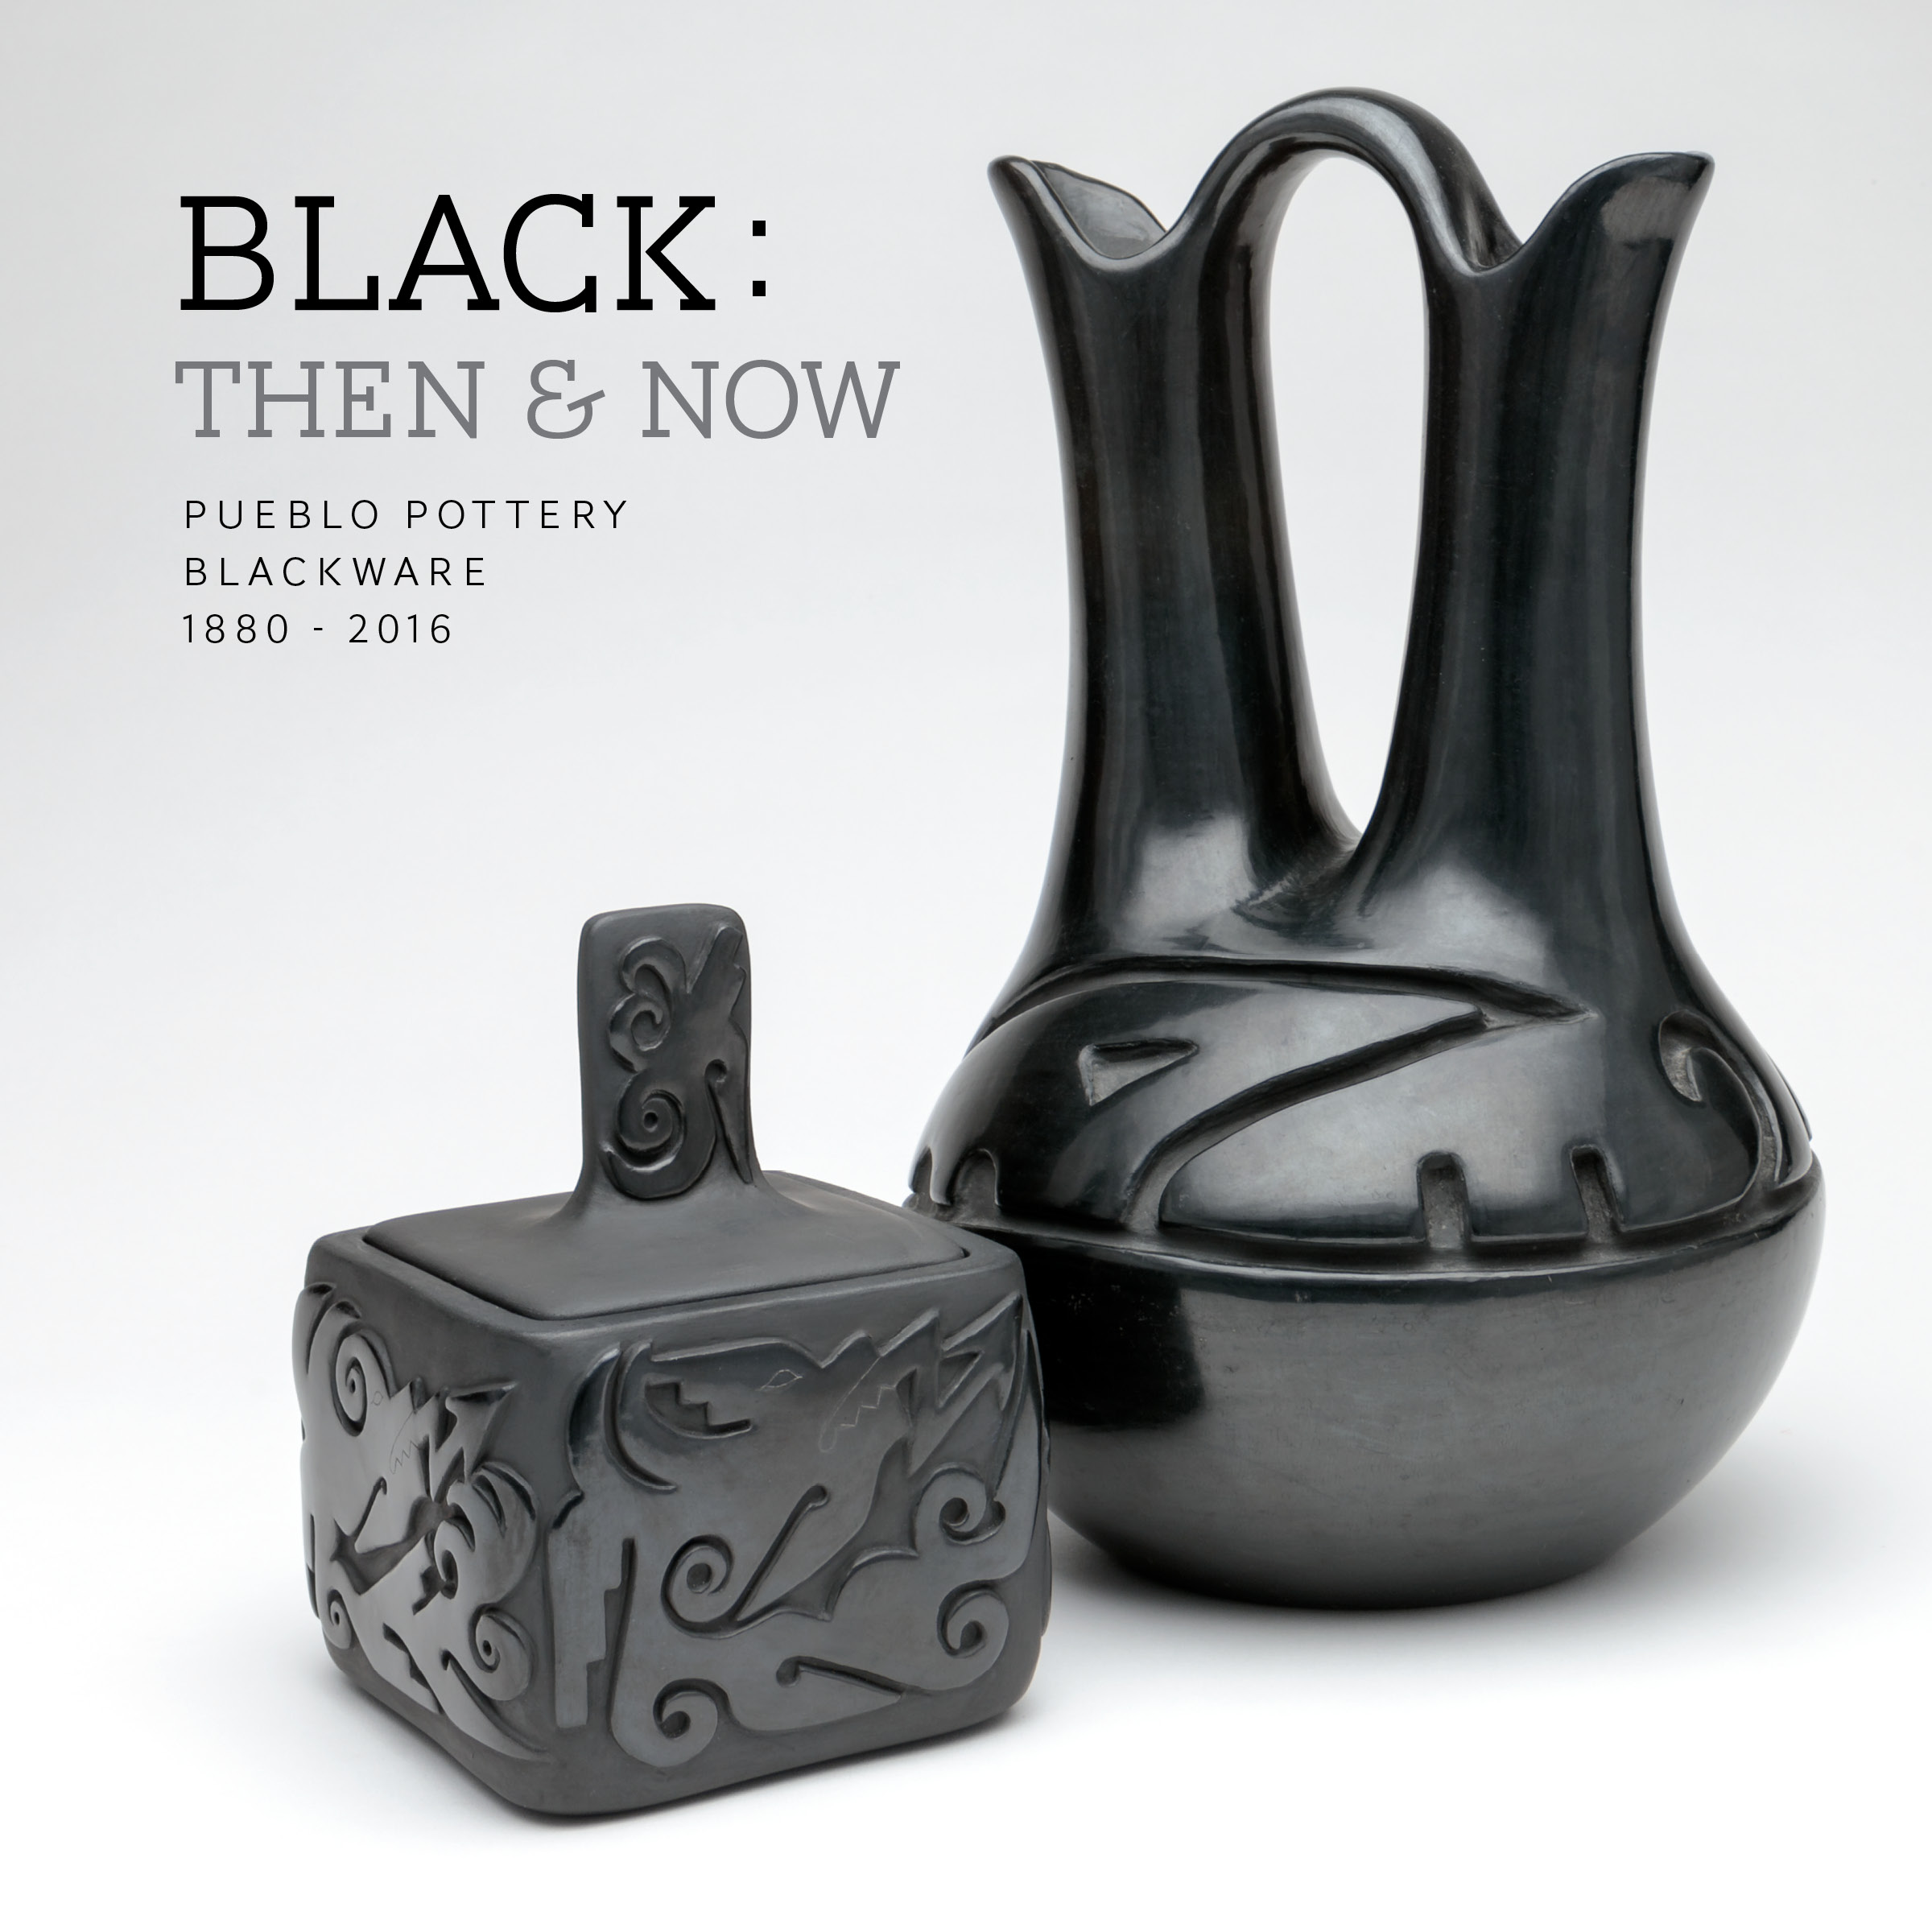 Black: Then & Now